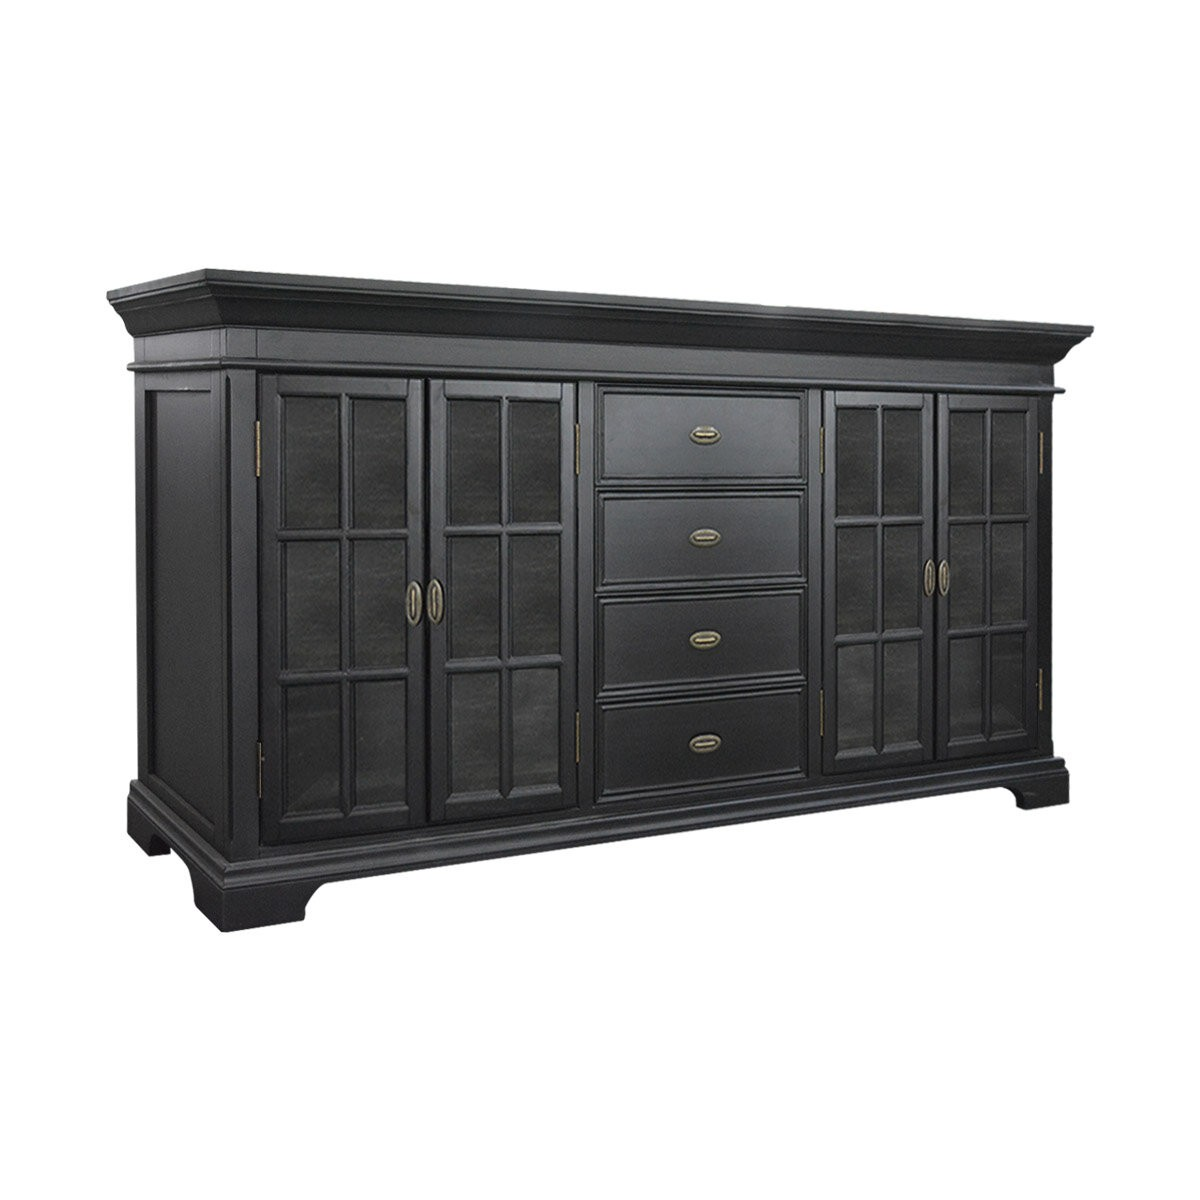 Kitchen Cabinet Doors And Drawers: Hamptons Halifax Large Kitchen Cabinet With Glass Door And